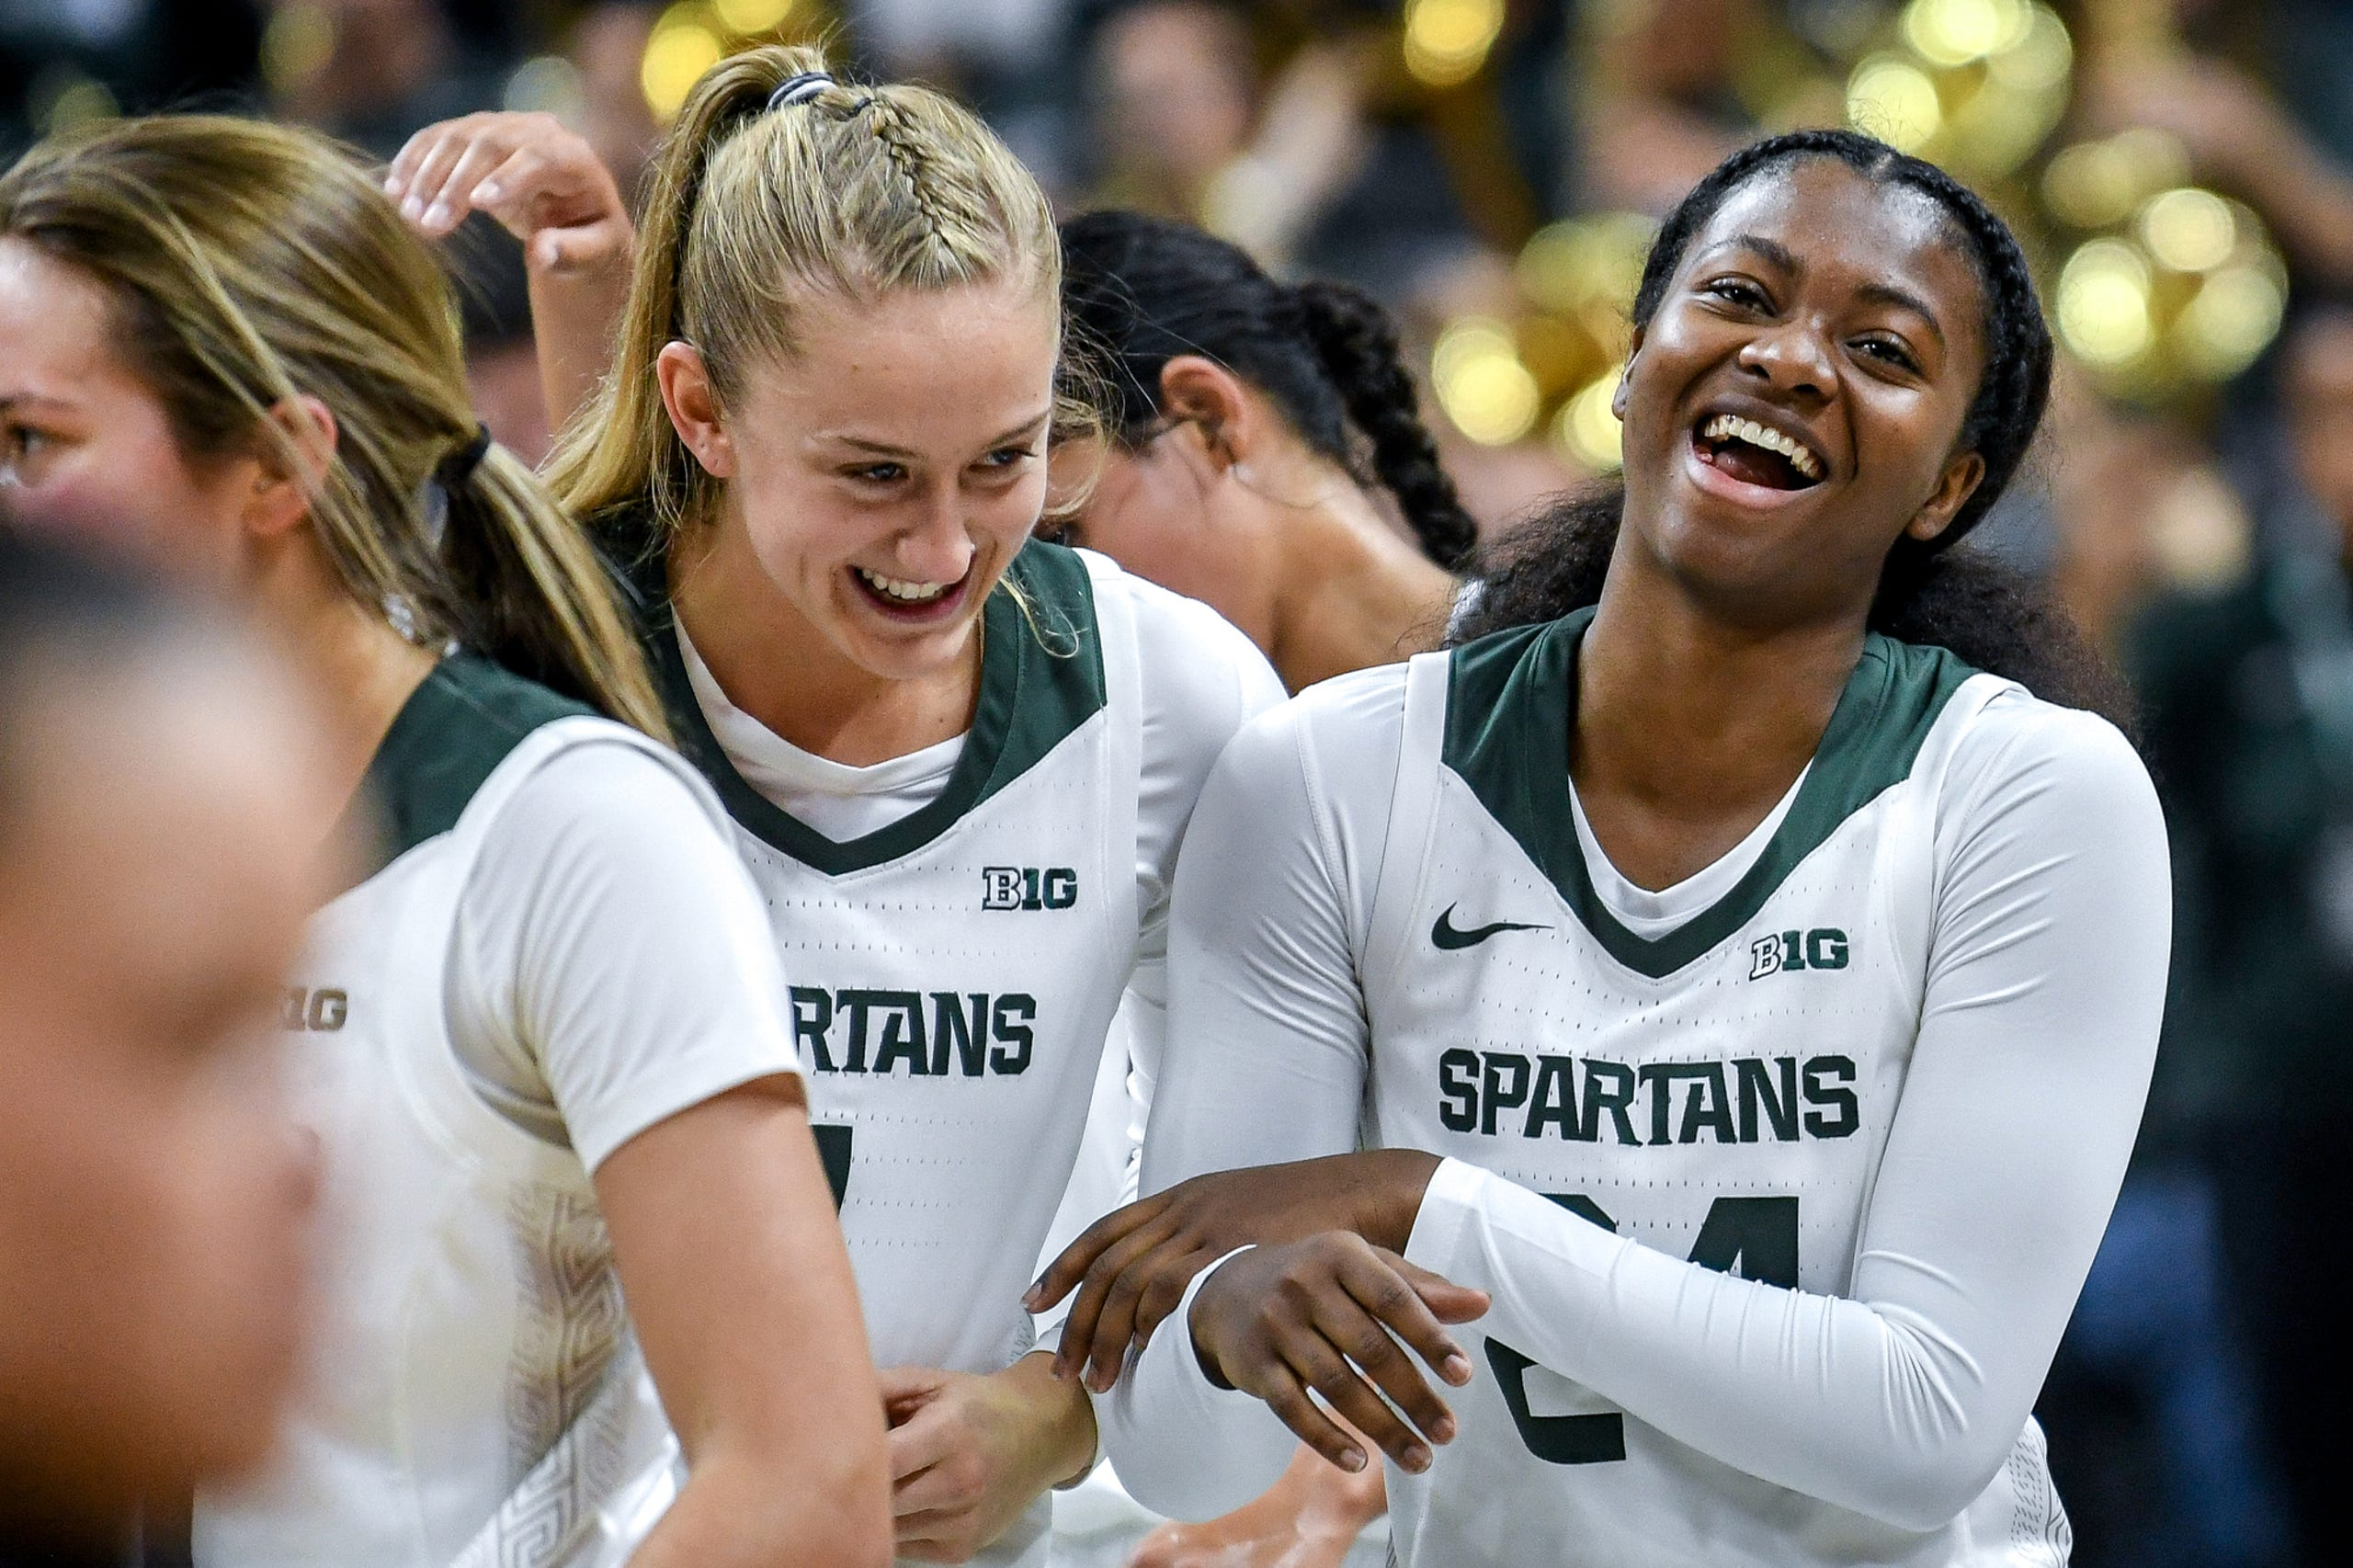 Michigan State's Nia Clouden, right, celebrates with Tory Ozment after their victory over Eastern Michigan on Tuesday, Nov. 5, 2019, at the Breslin Center in East Lansing.